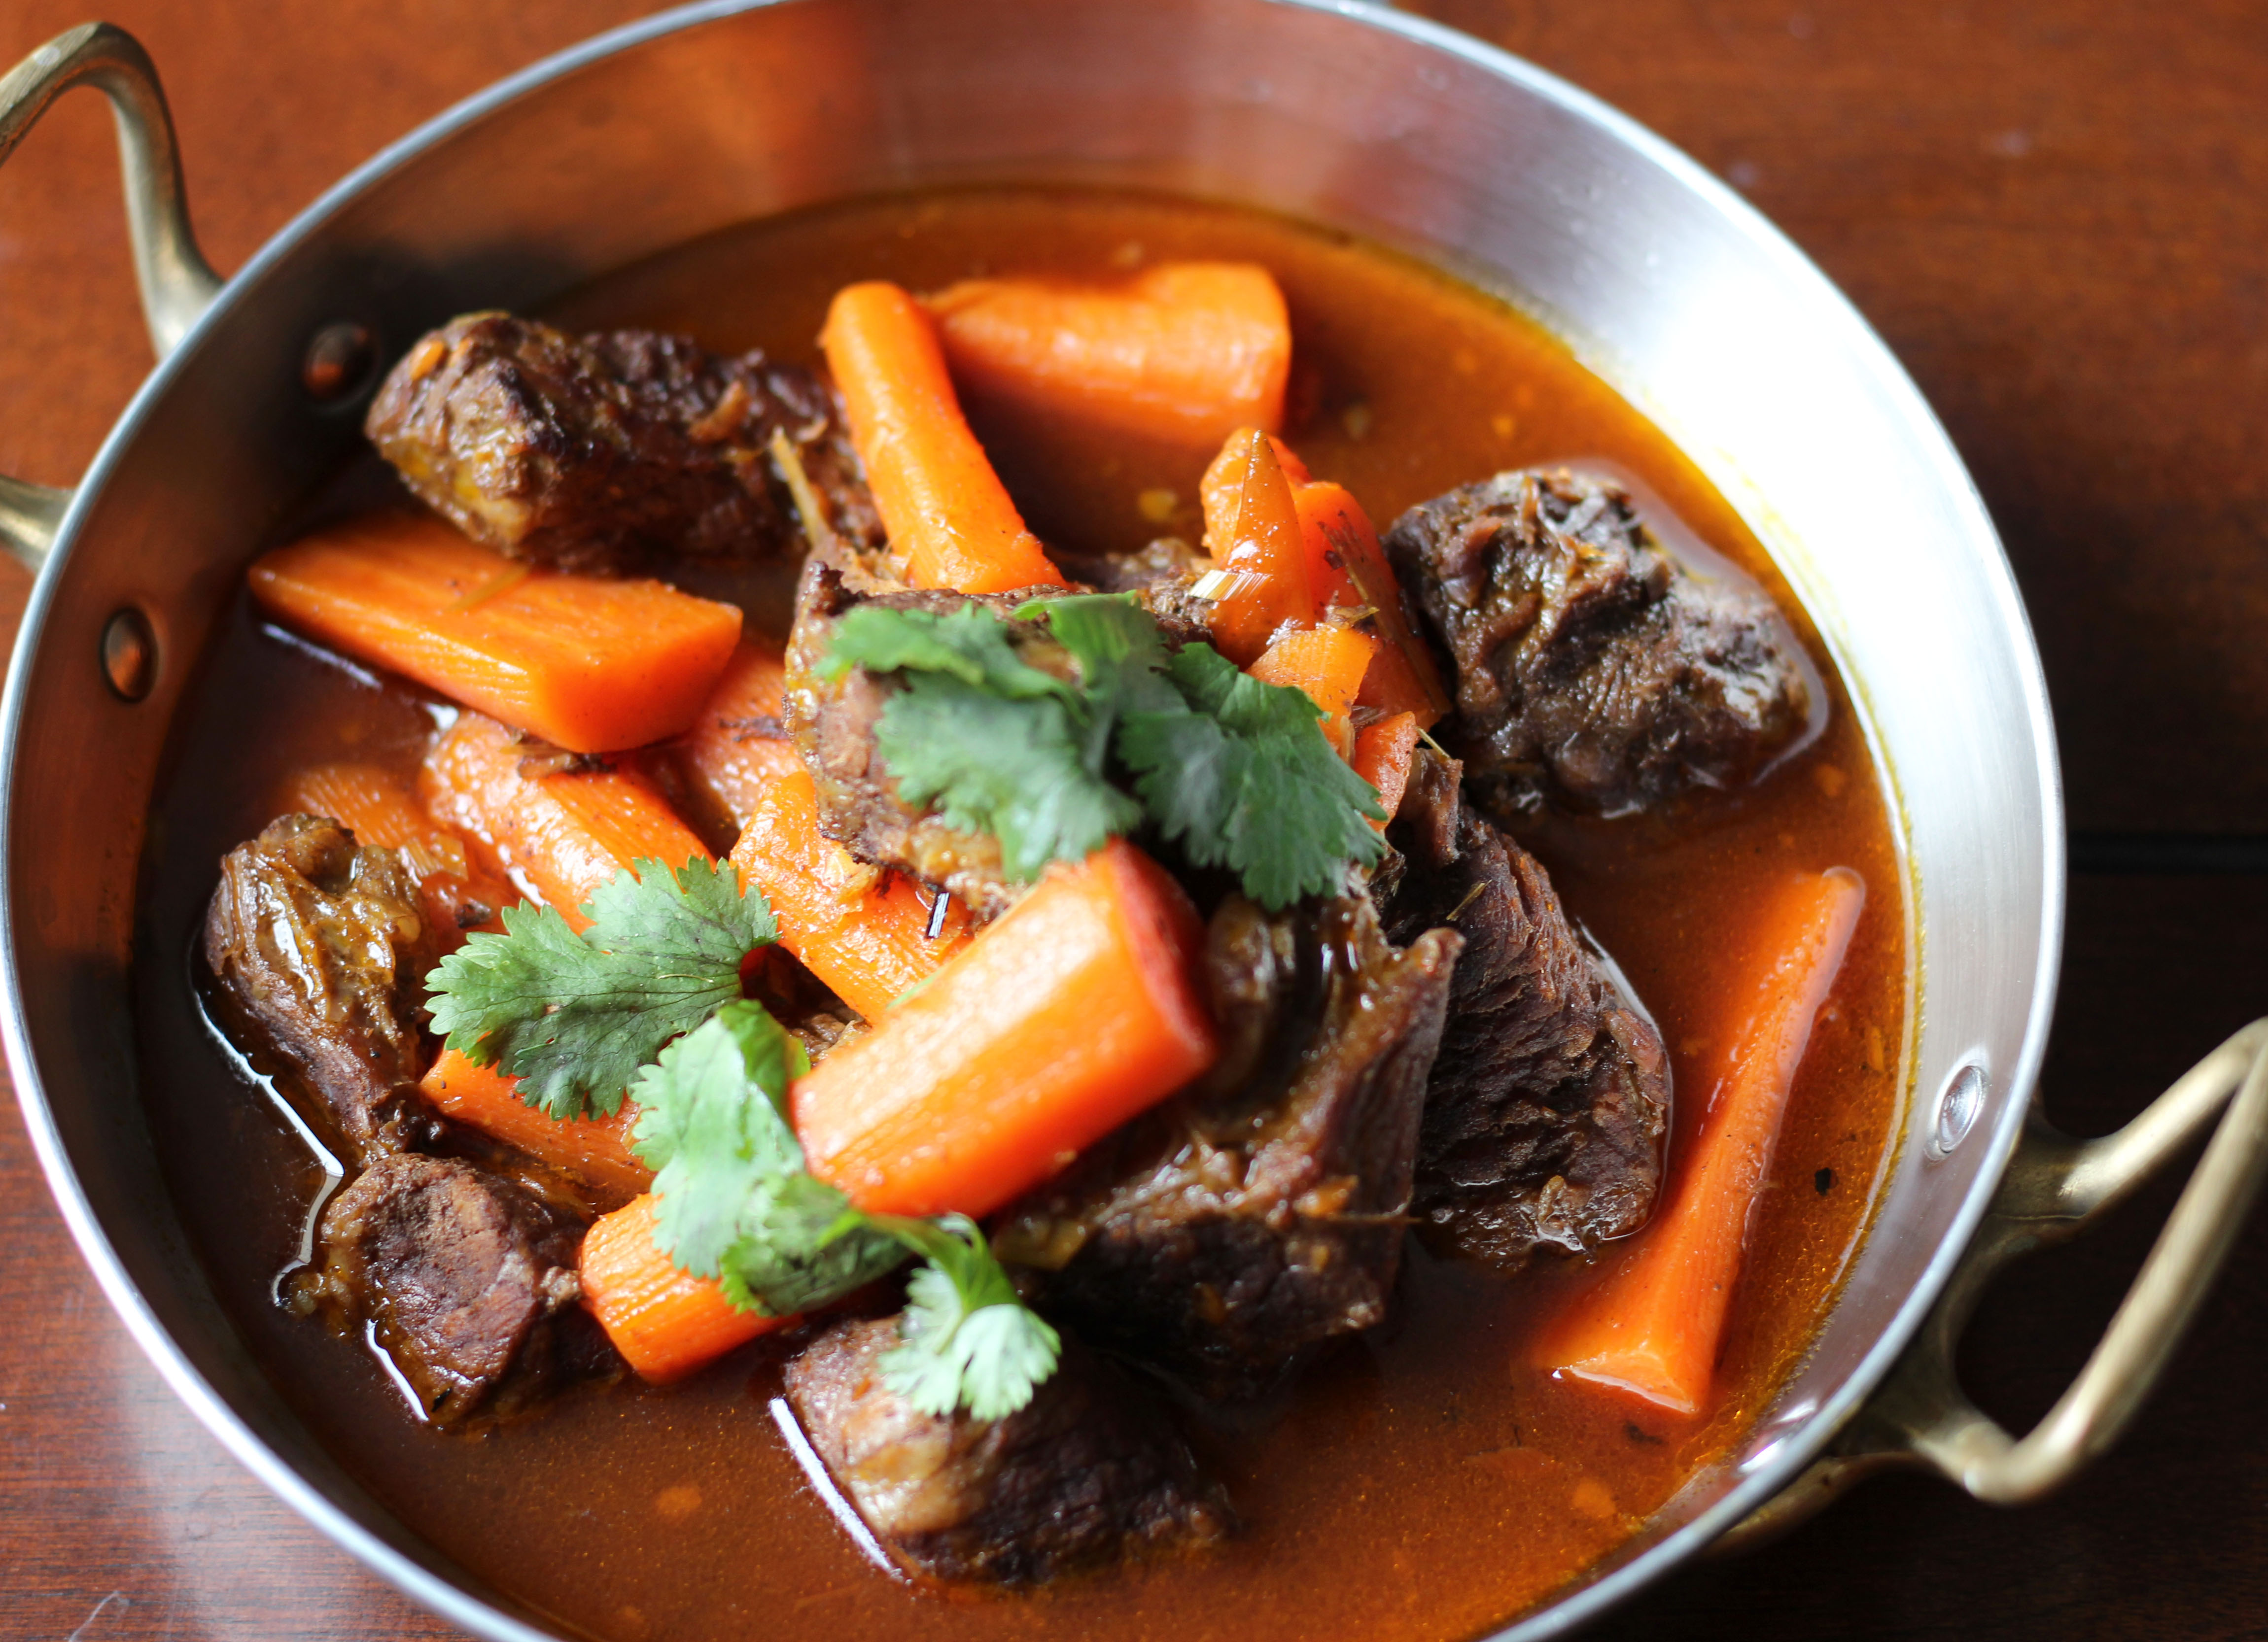 B kho vietnamese beef stew amy vs food - French cuisine influences ...